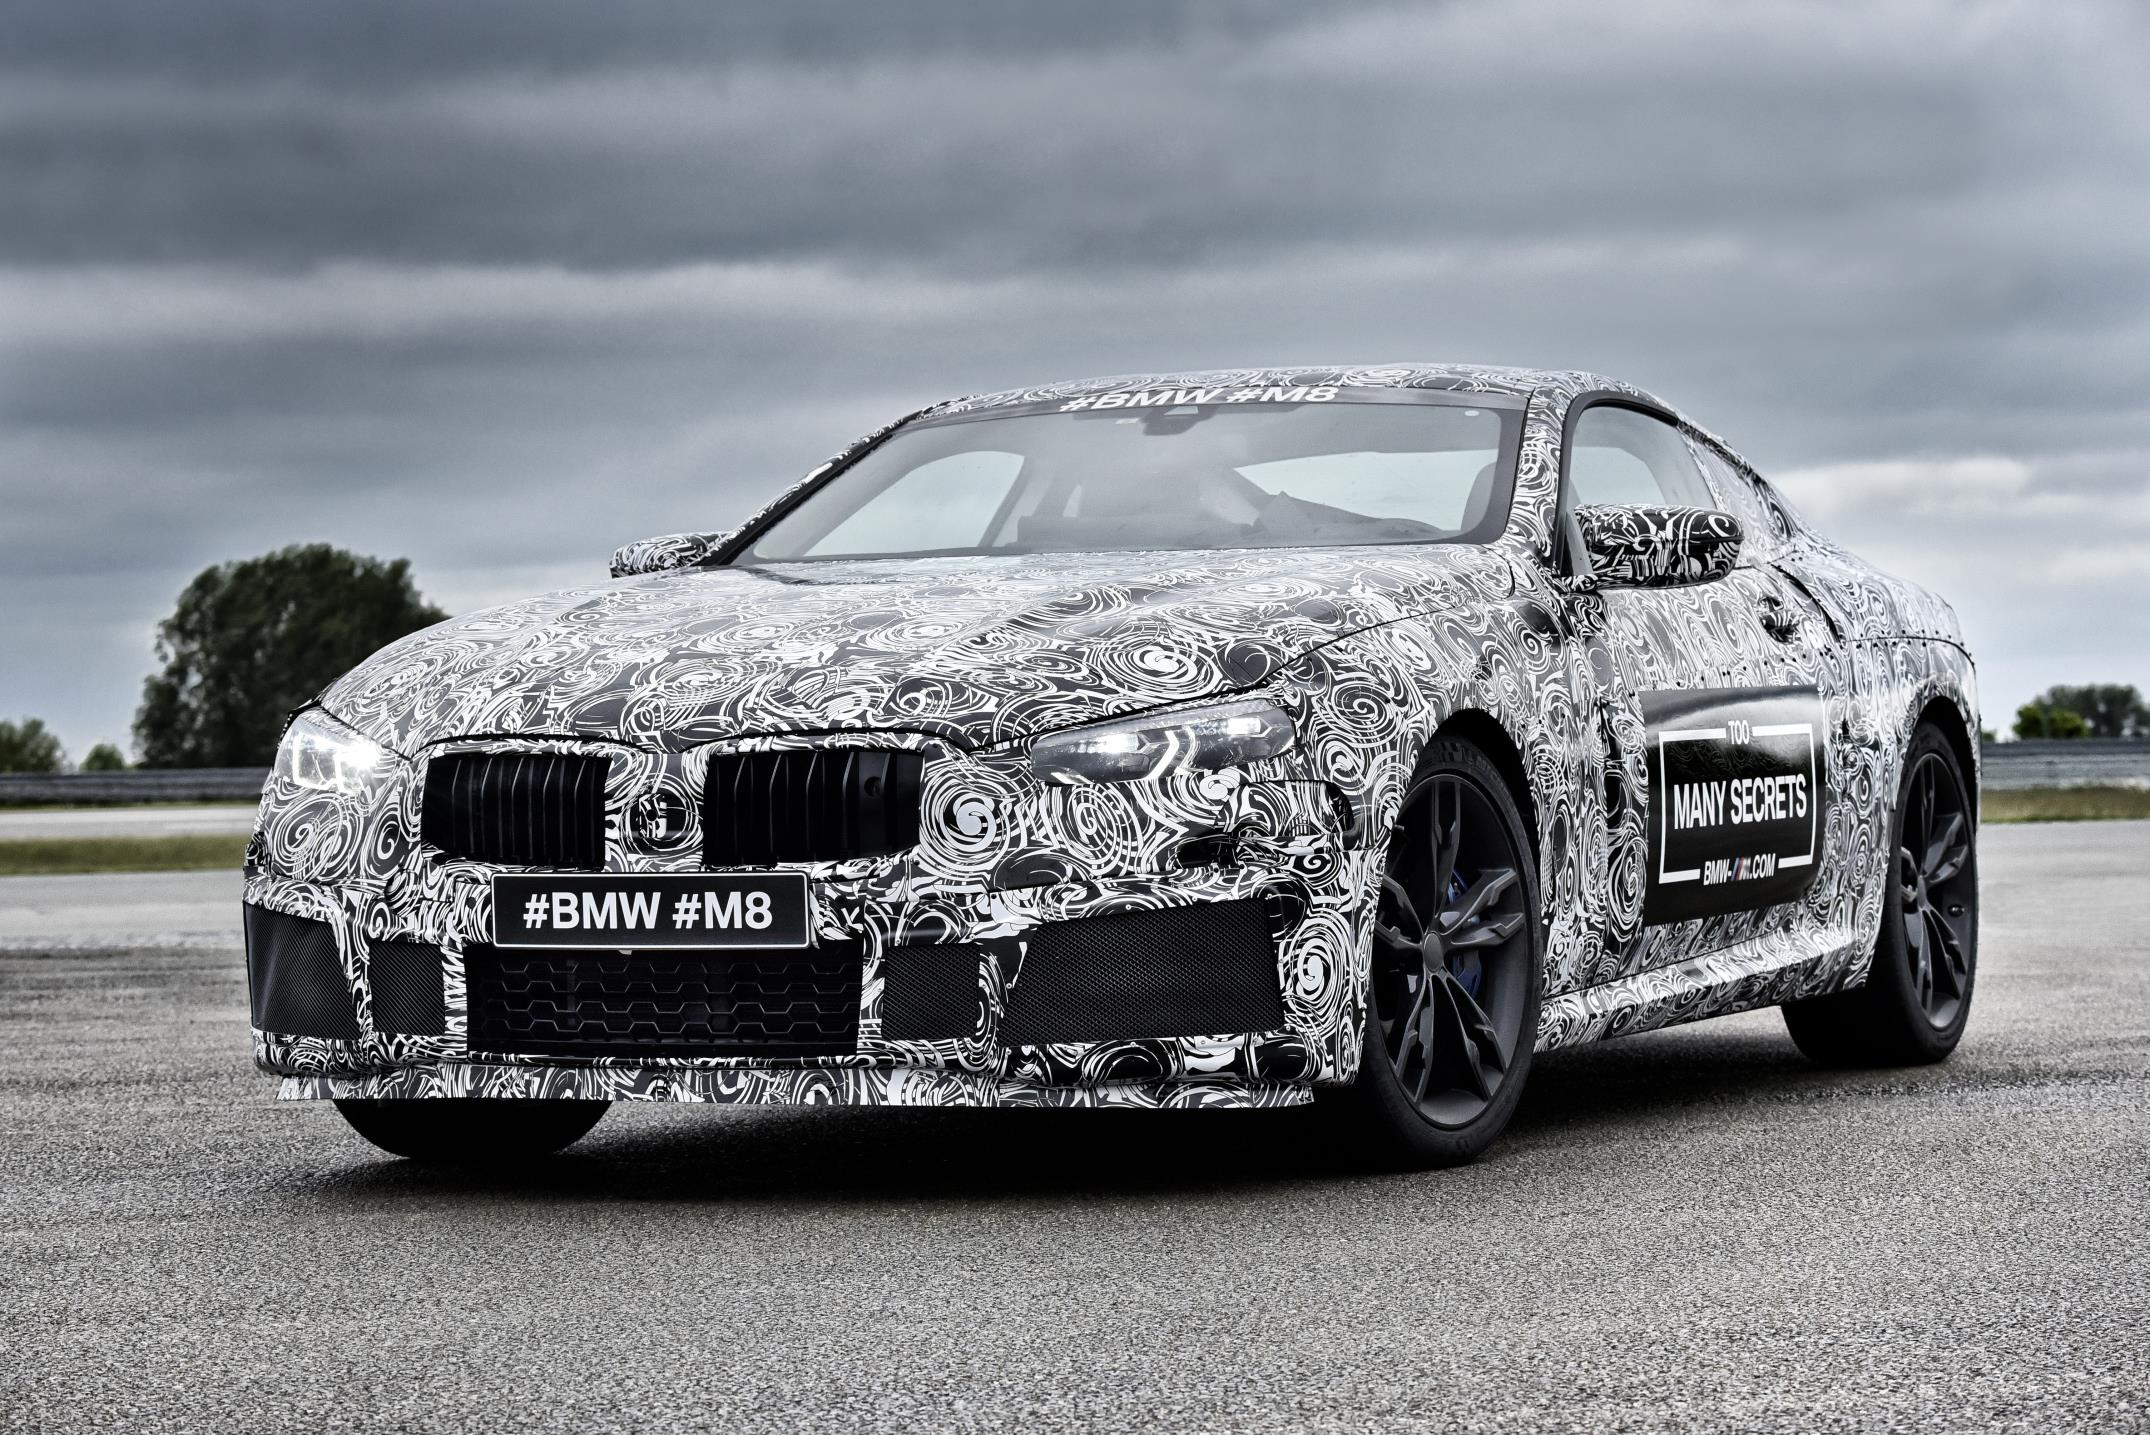 BMW's M8 Prototype – The Shape of Things to Come